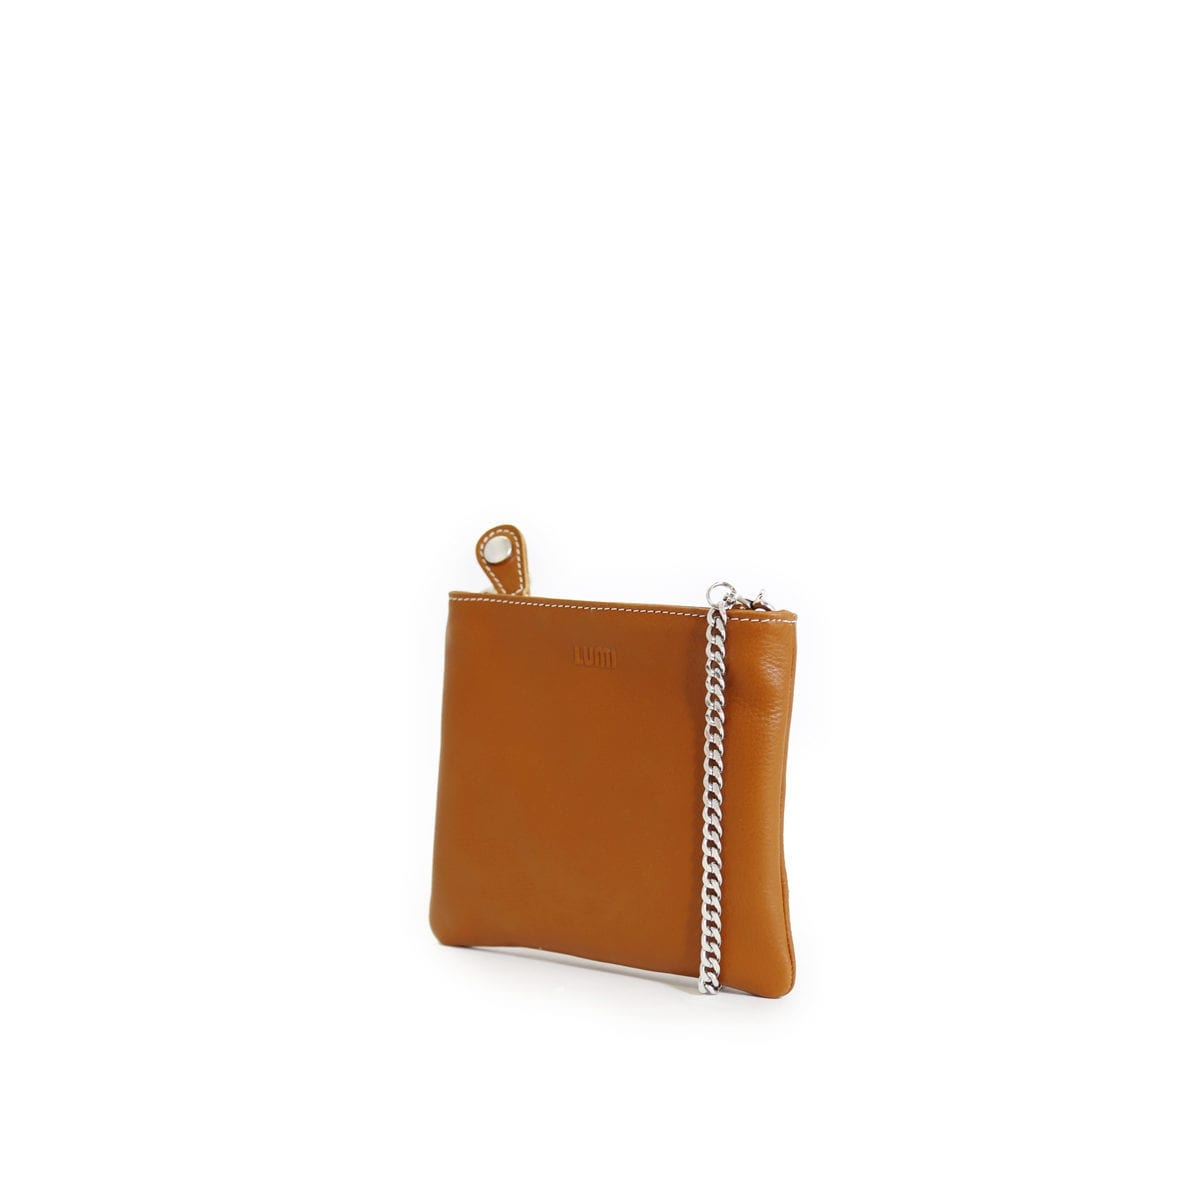 Laura Envelope Clutch Toffee Lumi Accessories Elegant Fashion Brown In Timeless And Colour